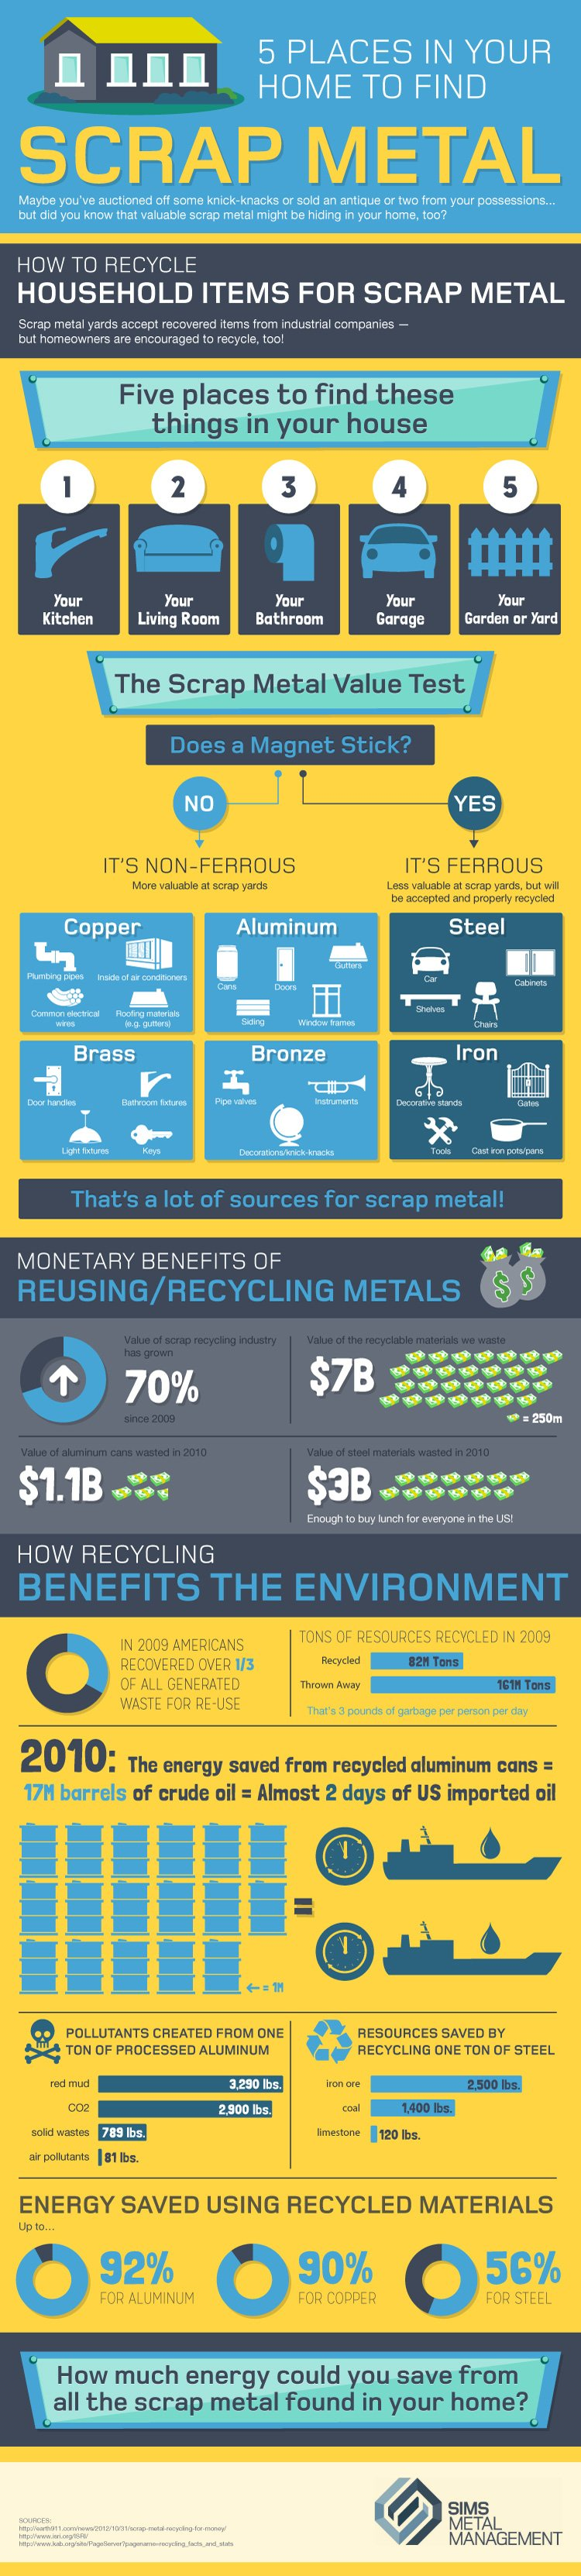 Household Scrap Metal